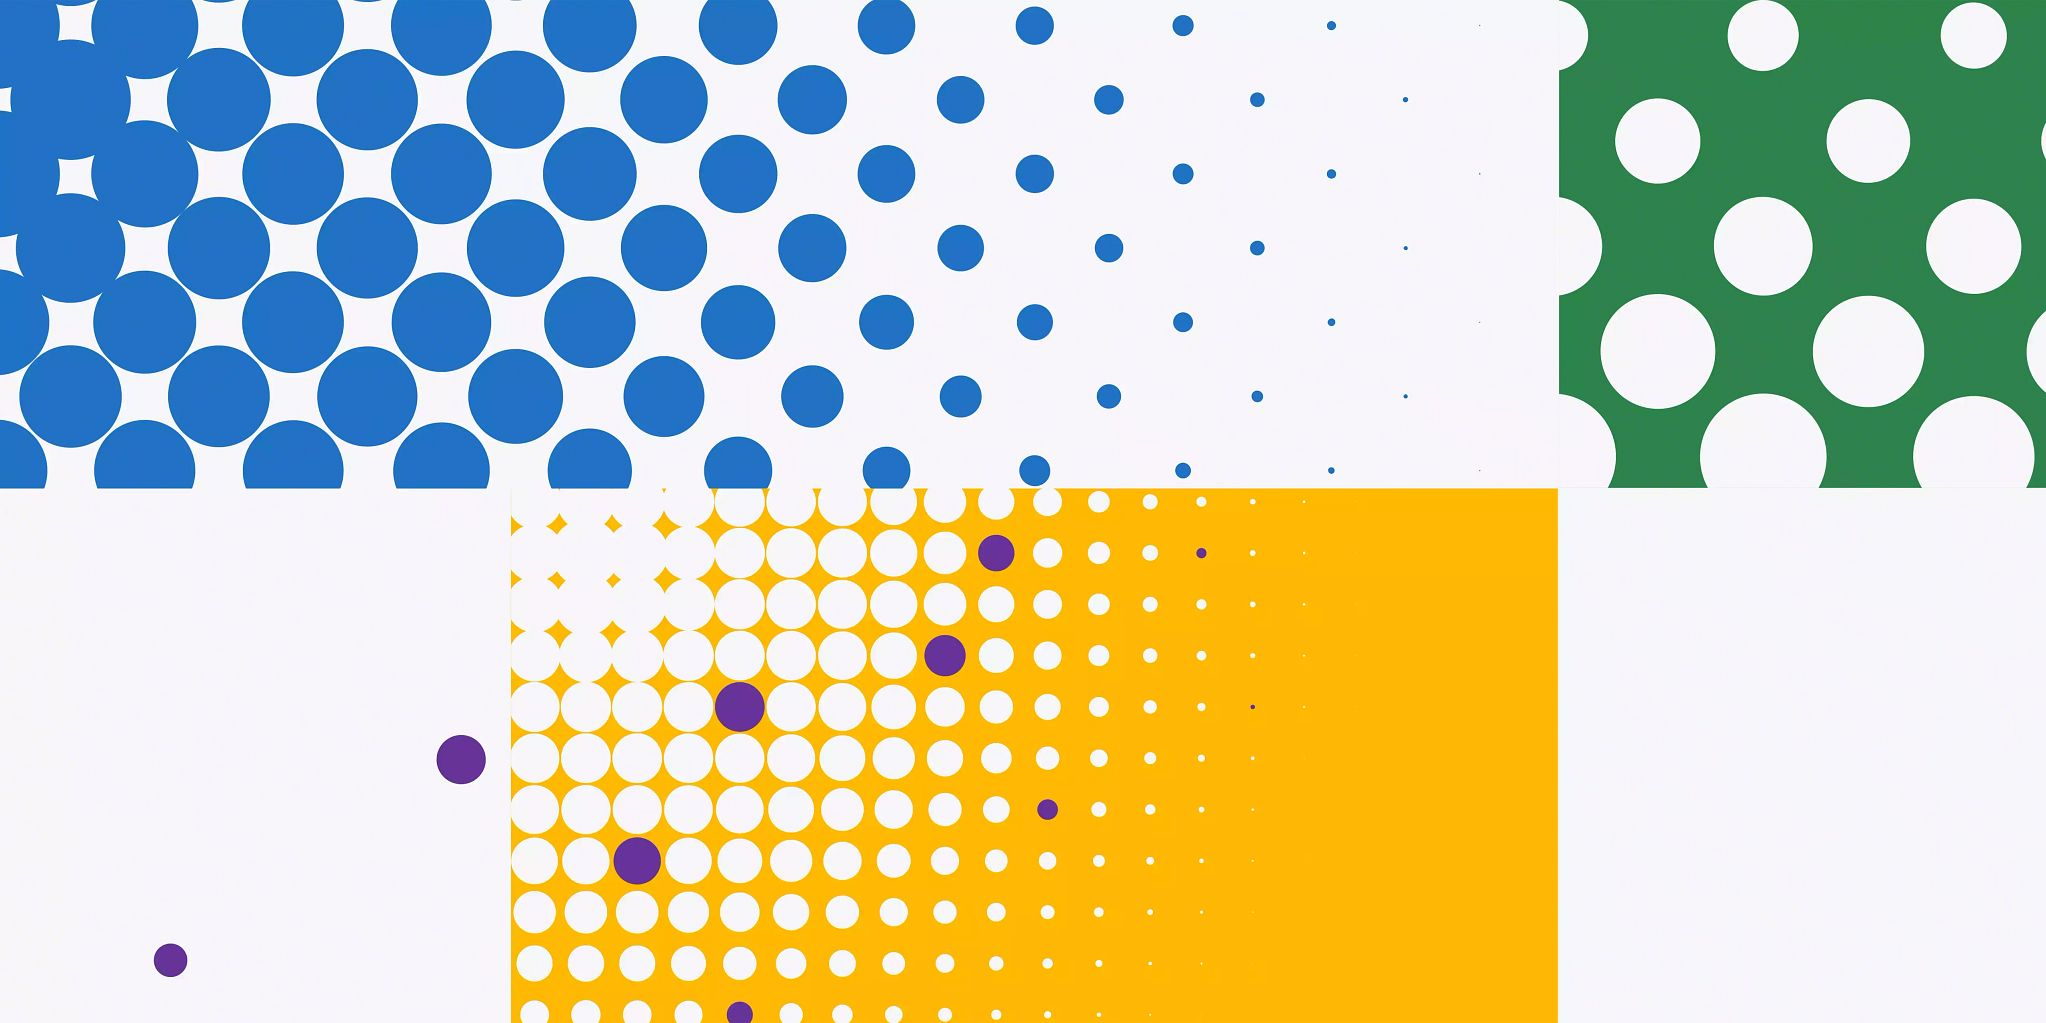 Graphic with five uneven, rectangular and square sections. One with blue circles, one with white circles on a green background, one with white dots on a yellow background, and then purple circles scattered over the white circles on the yellow background.